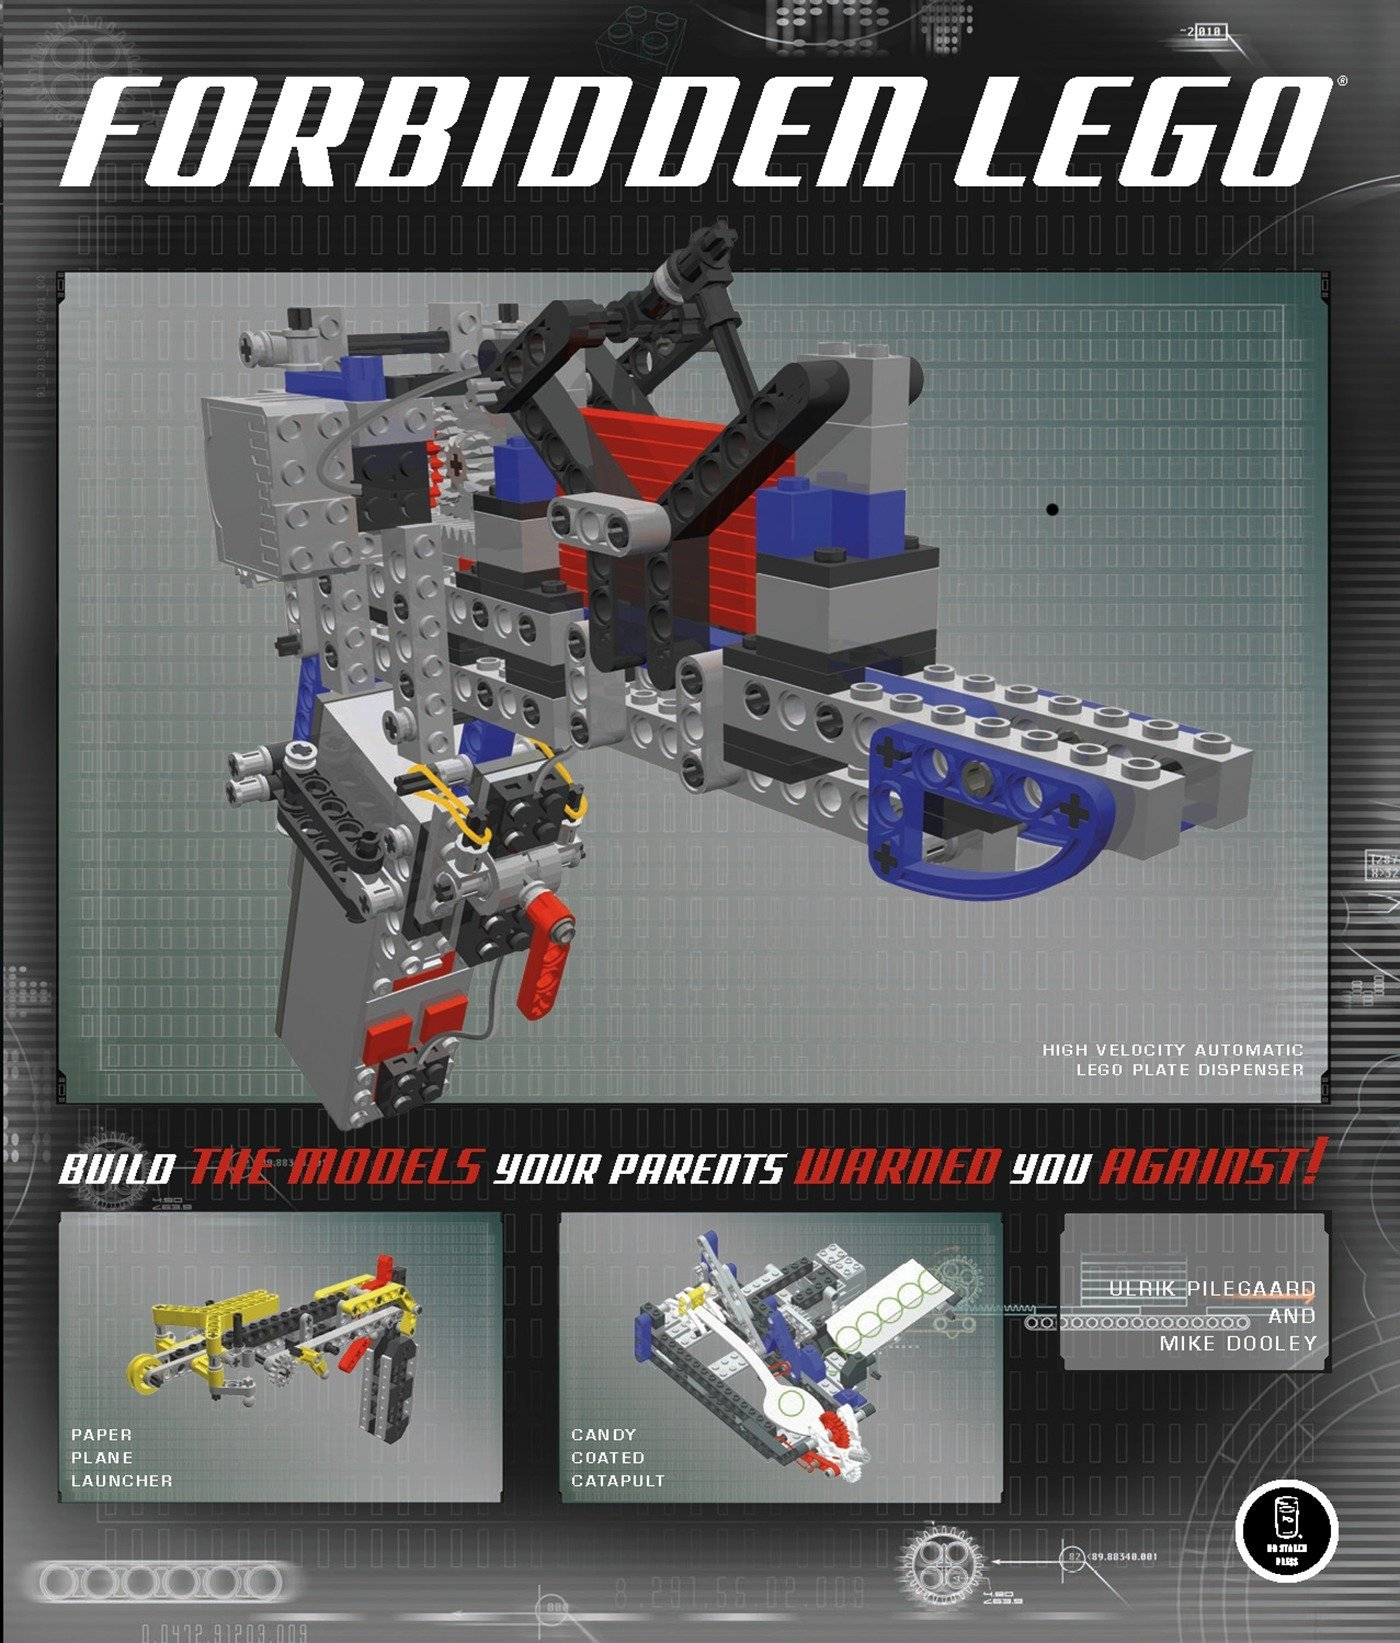 Forbidden Lego Build The Models Your Parents Warned You Against